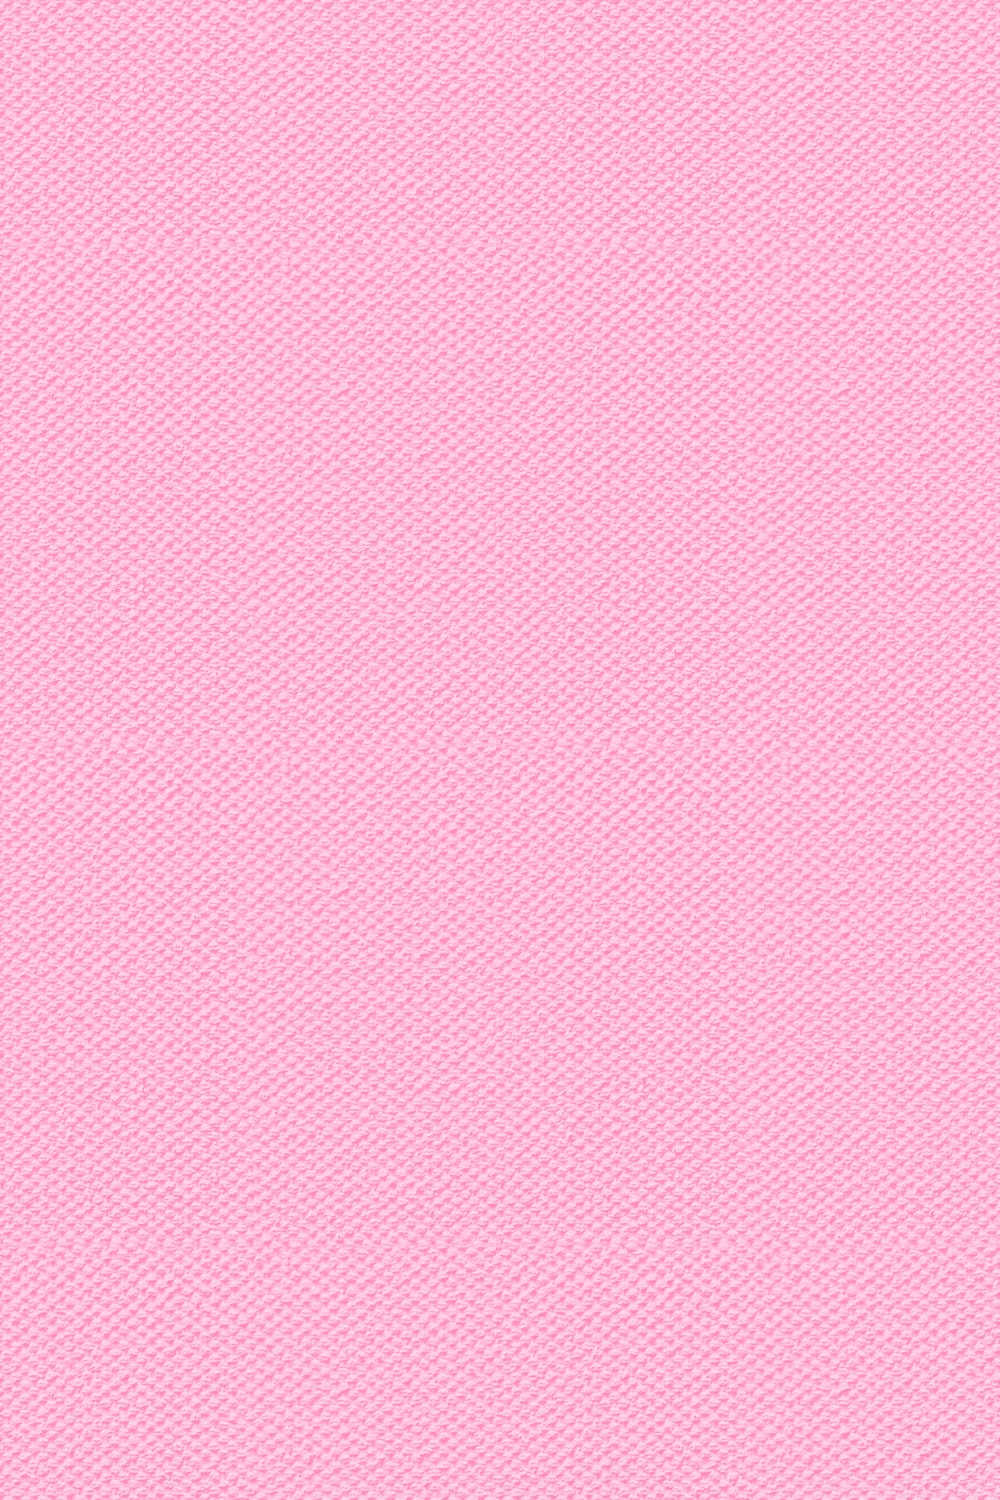 Light Pink Aesthetic Wallpaper 1000 Free Download Vector Image Png Psd Files